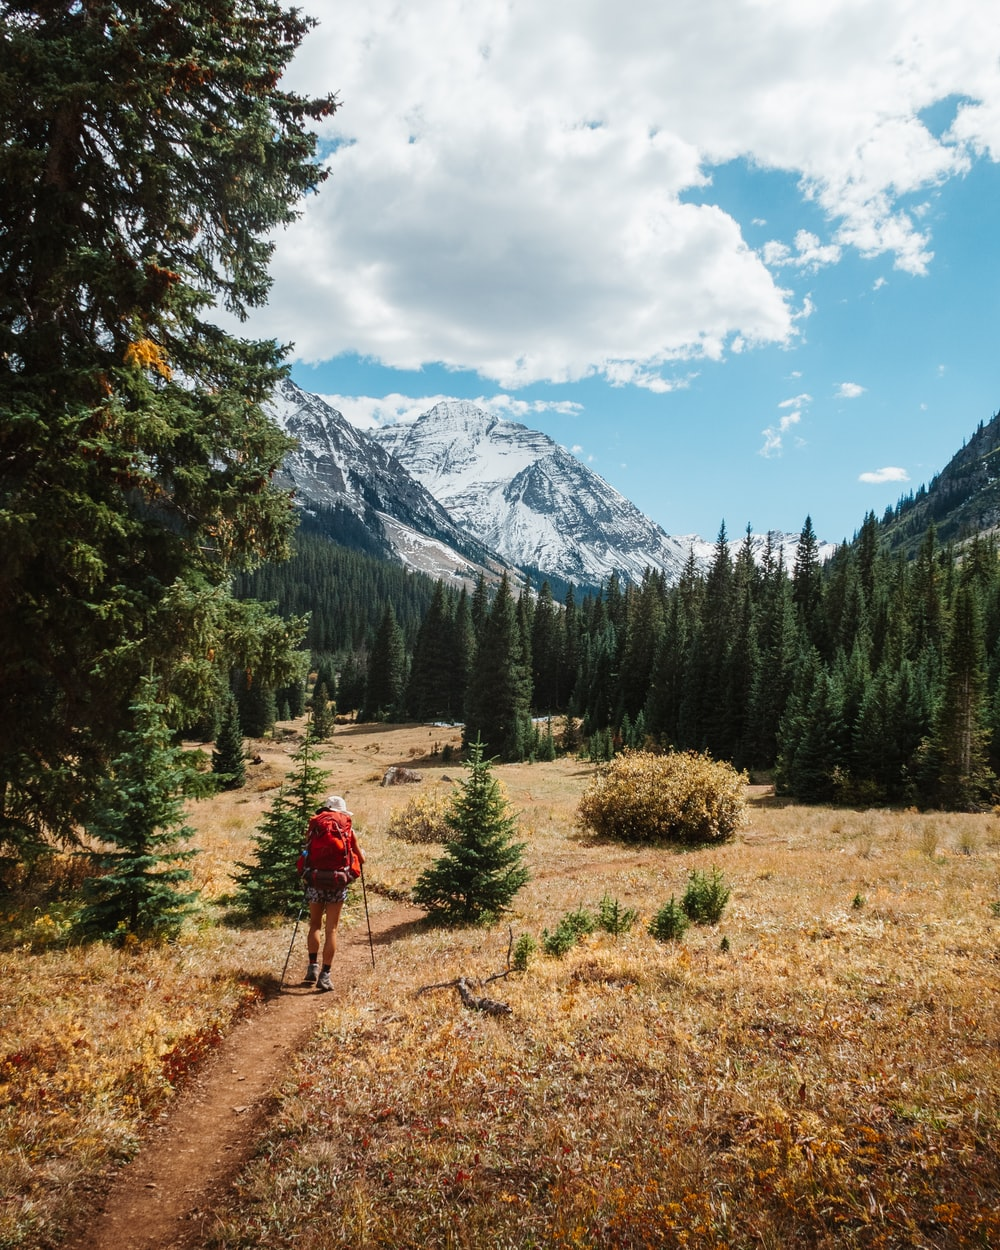 person in red jacket walking on dirt road near green trees during daytime